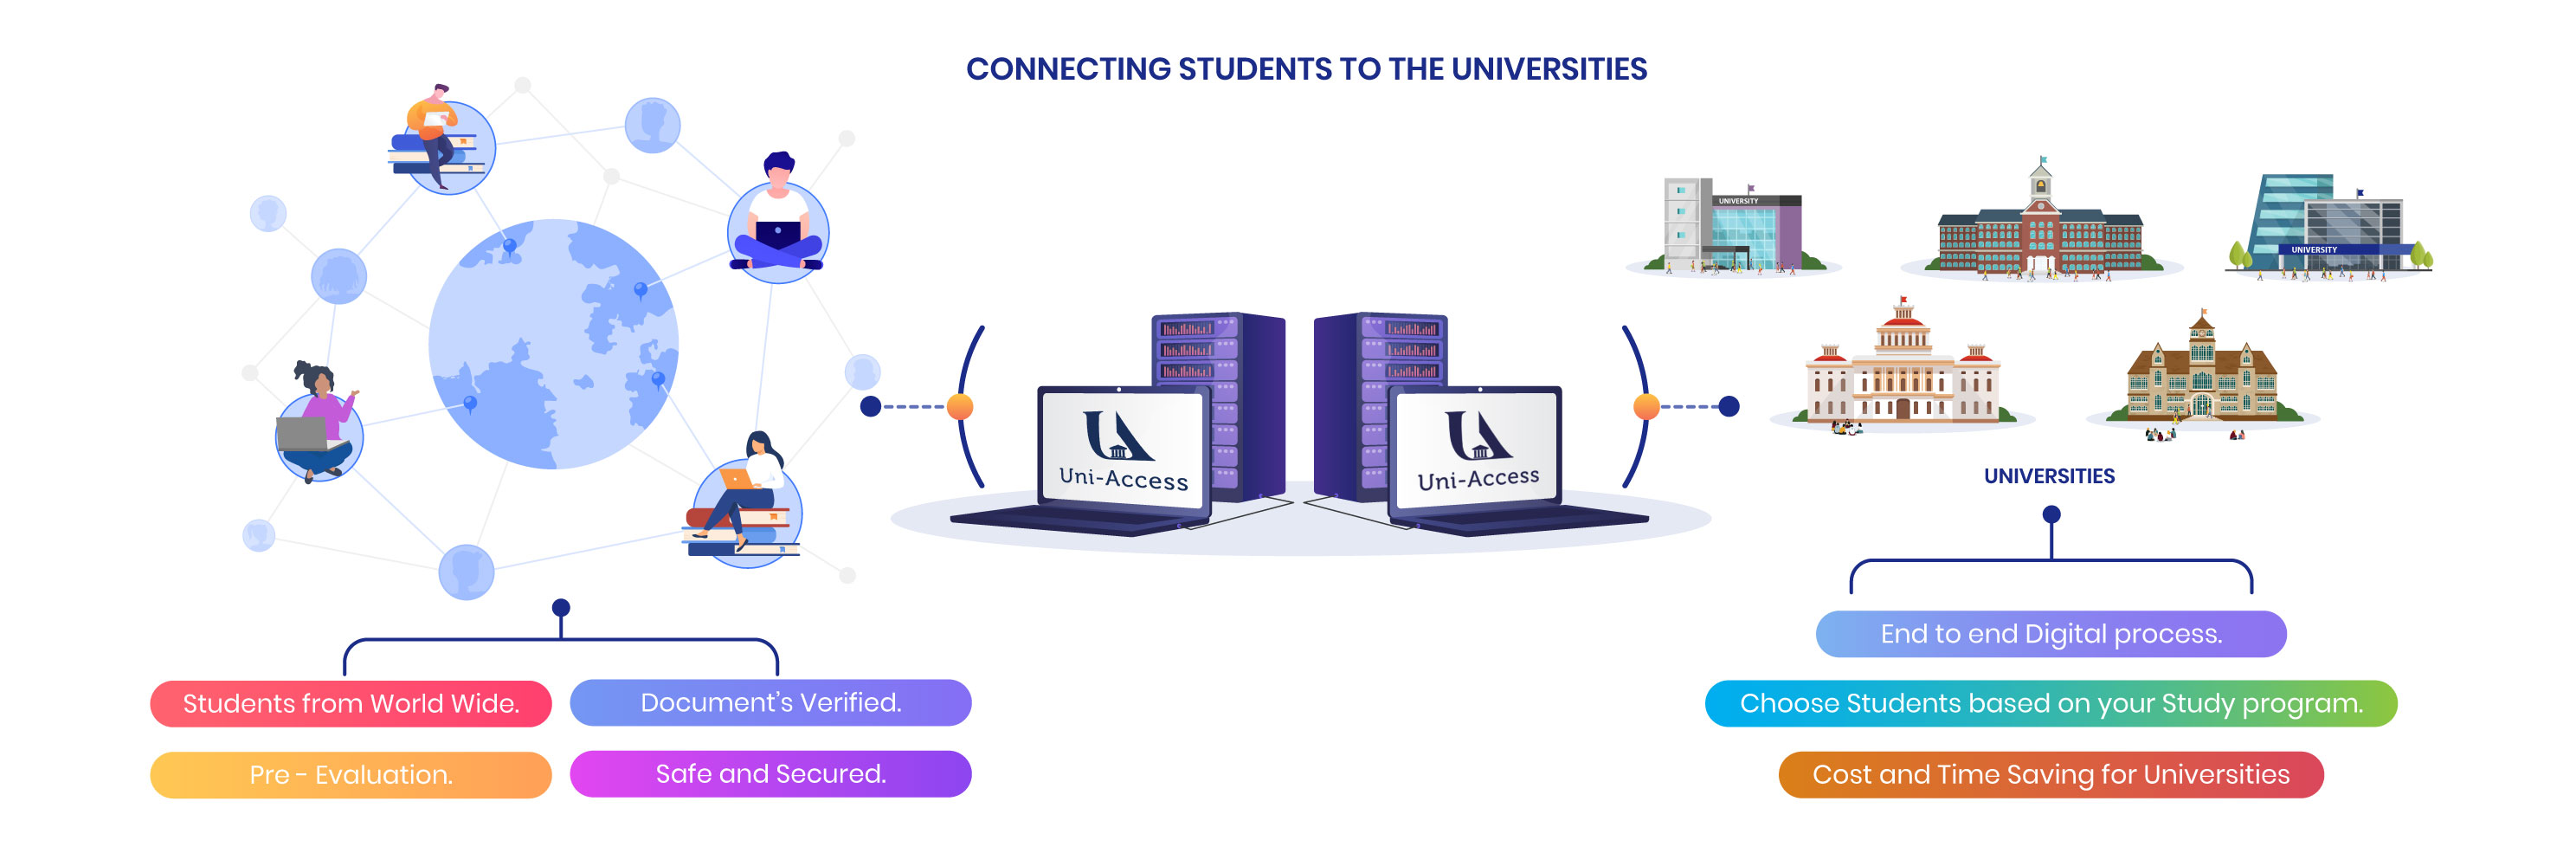 Database of Student